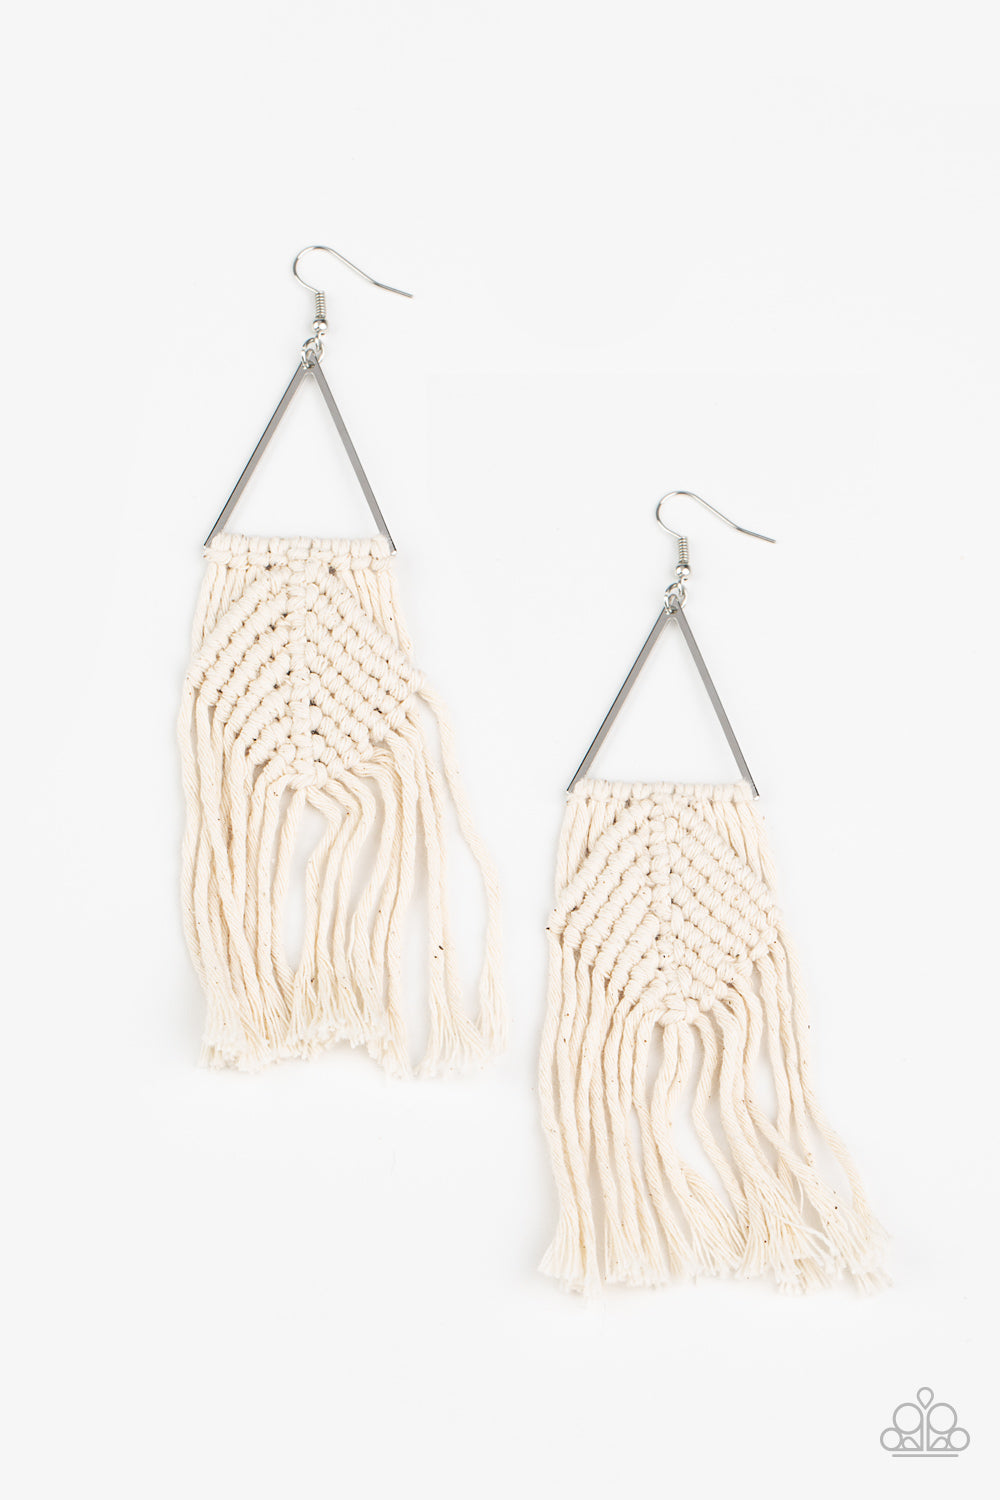 five-dollar-jewelry-macrame-jungle-white-earrings-paparazzi-accessories